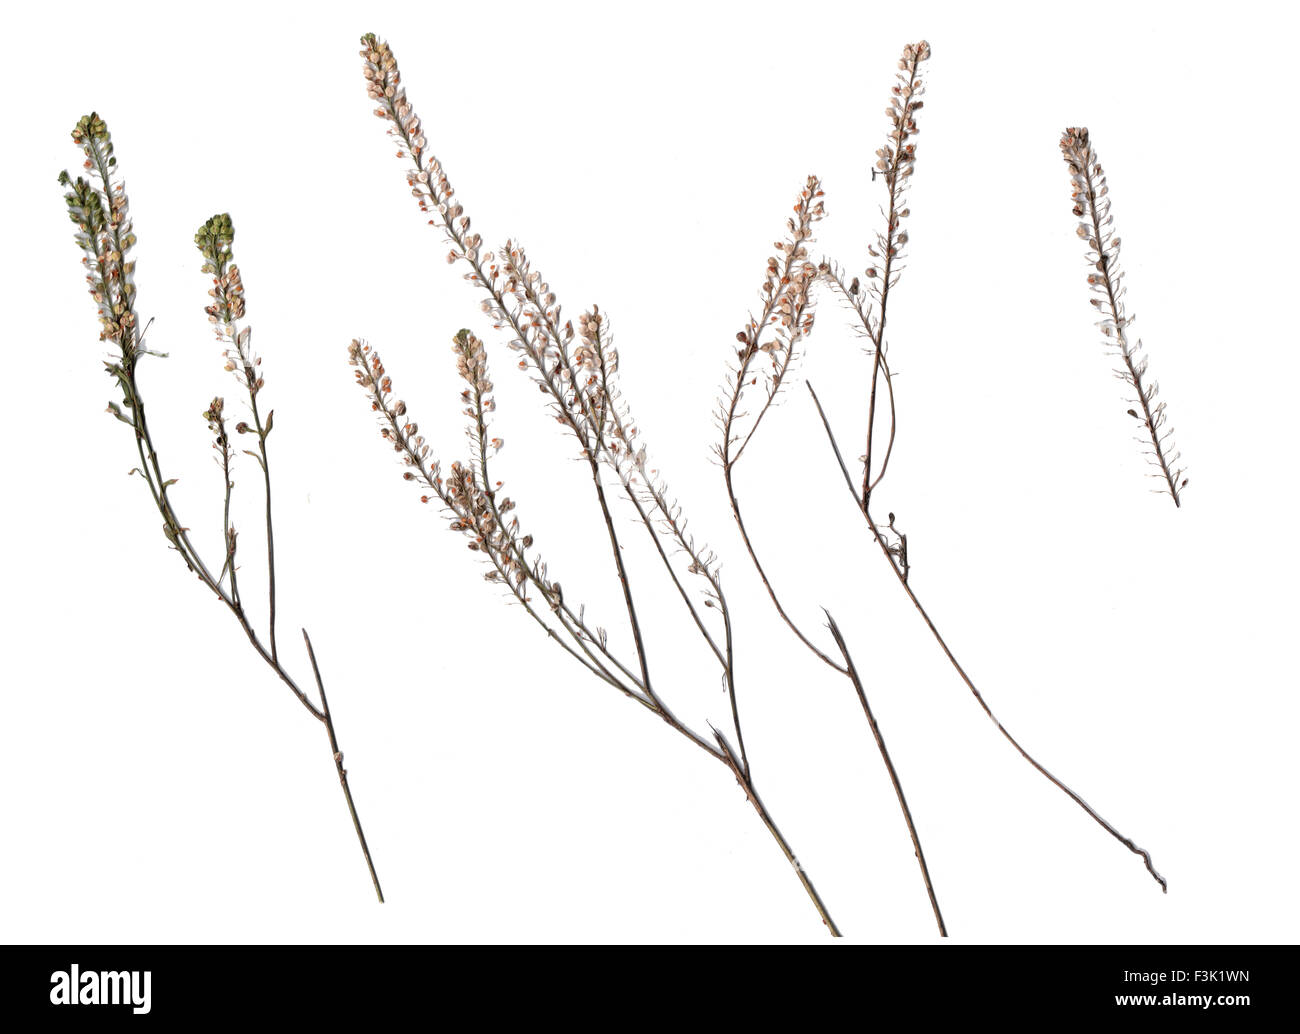 Collection of dried plants isolated on a white background - Stock Image